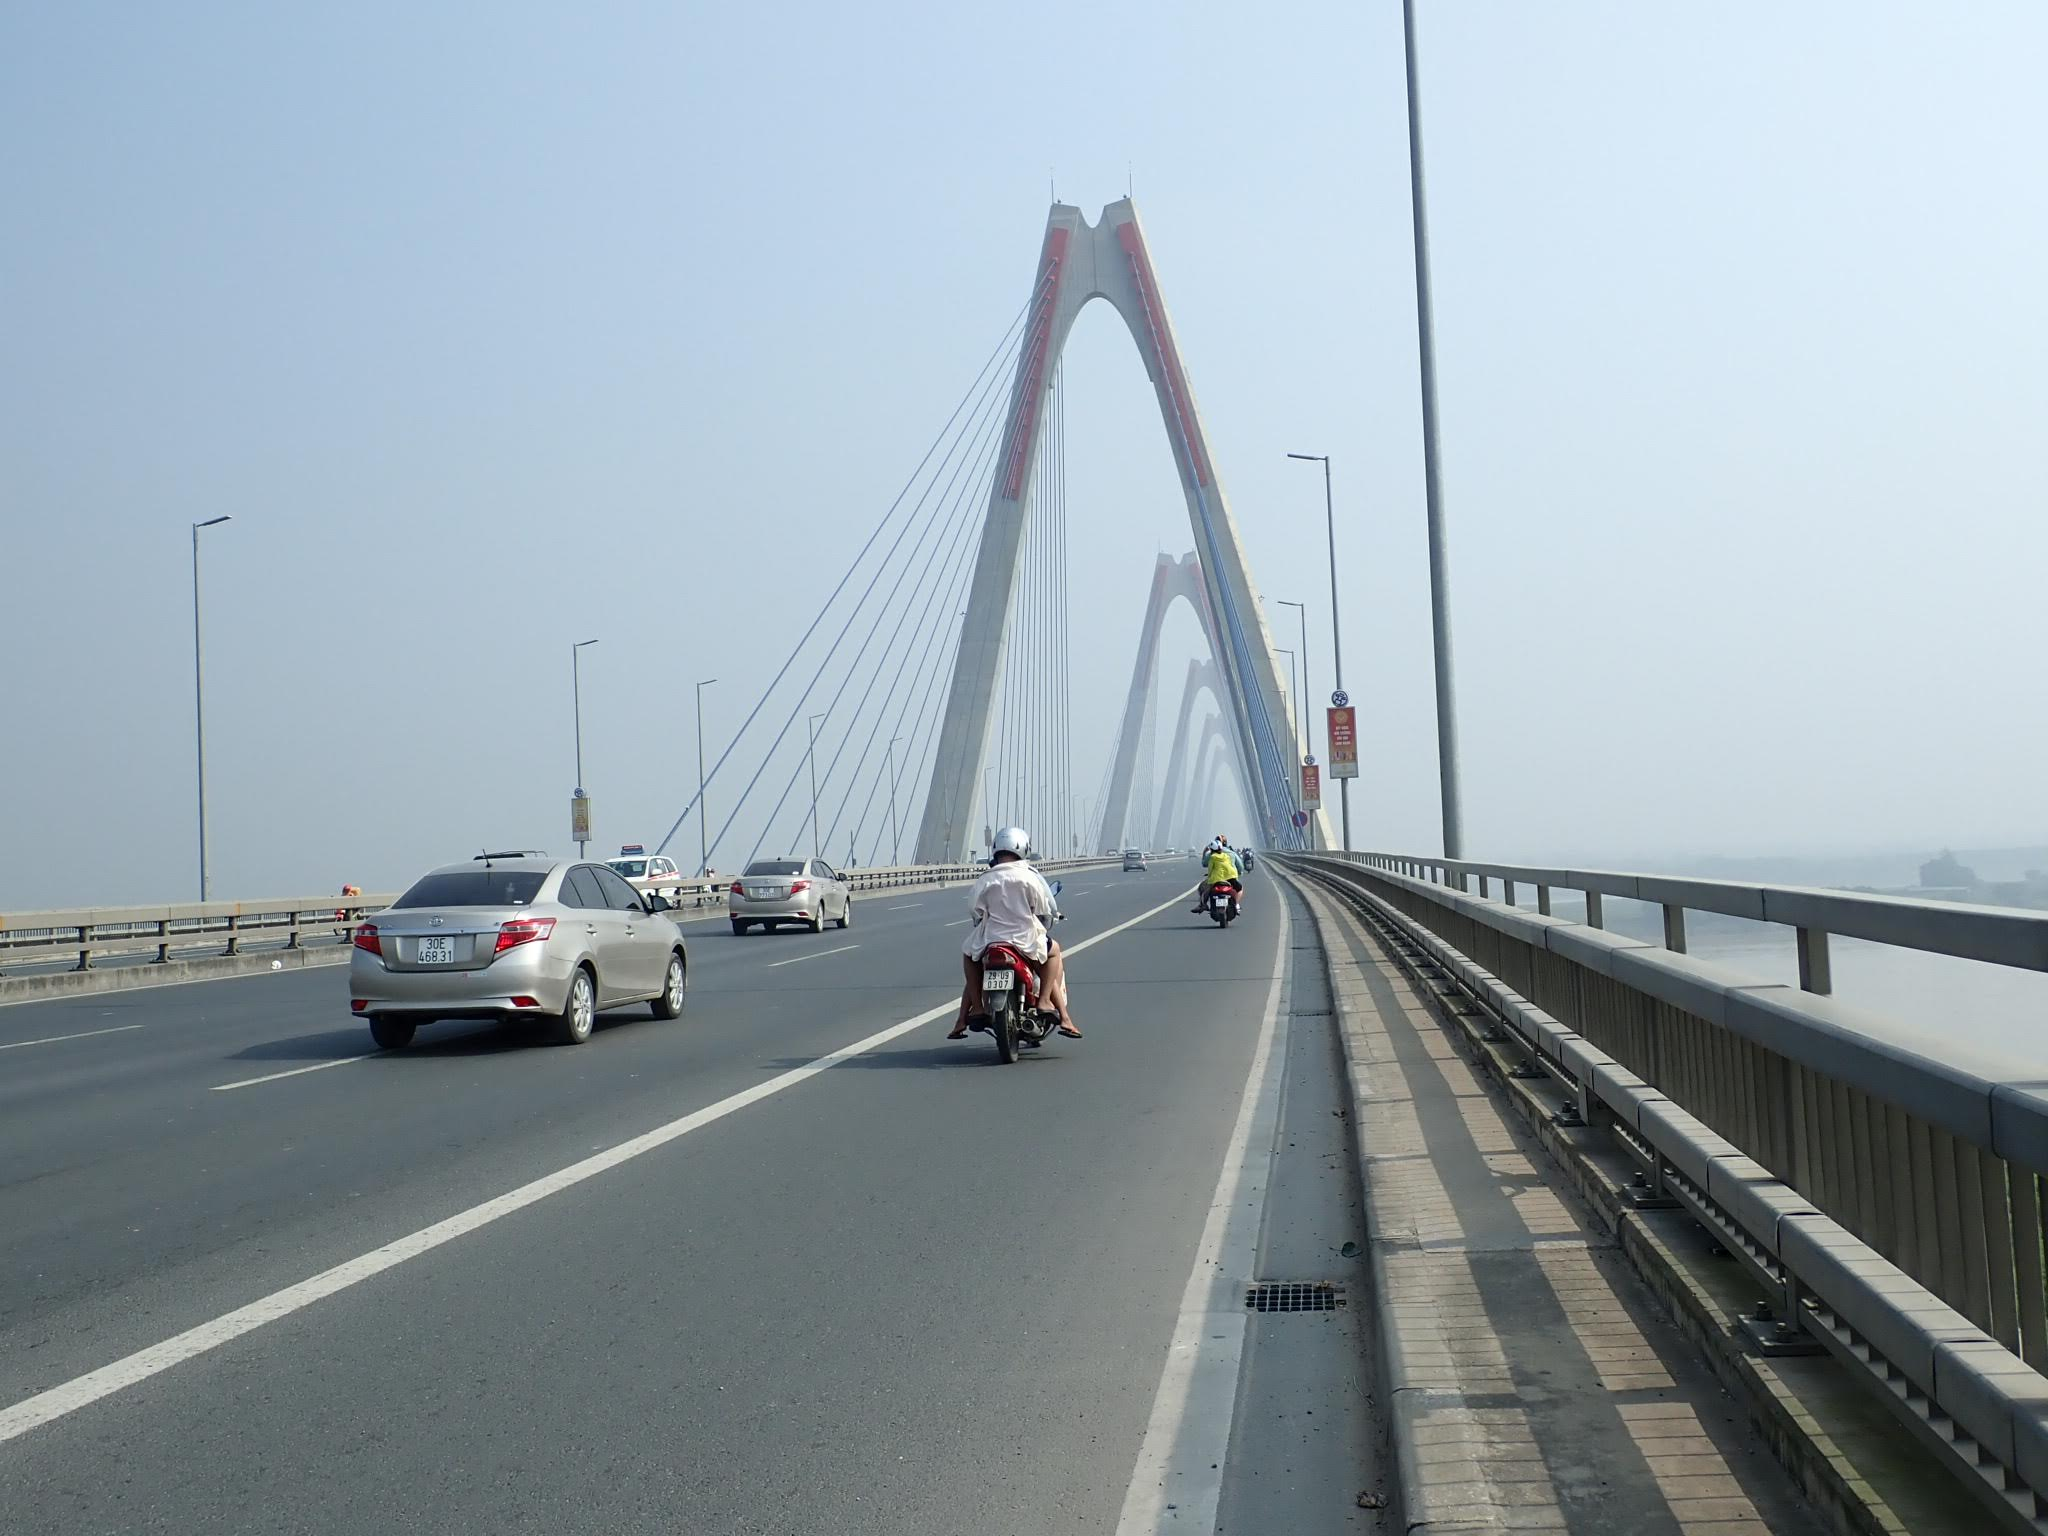 Hanoi highway 14 bridge